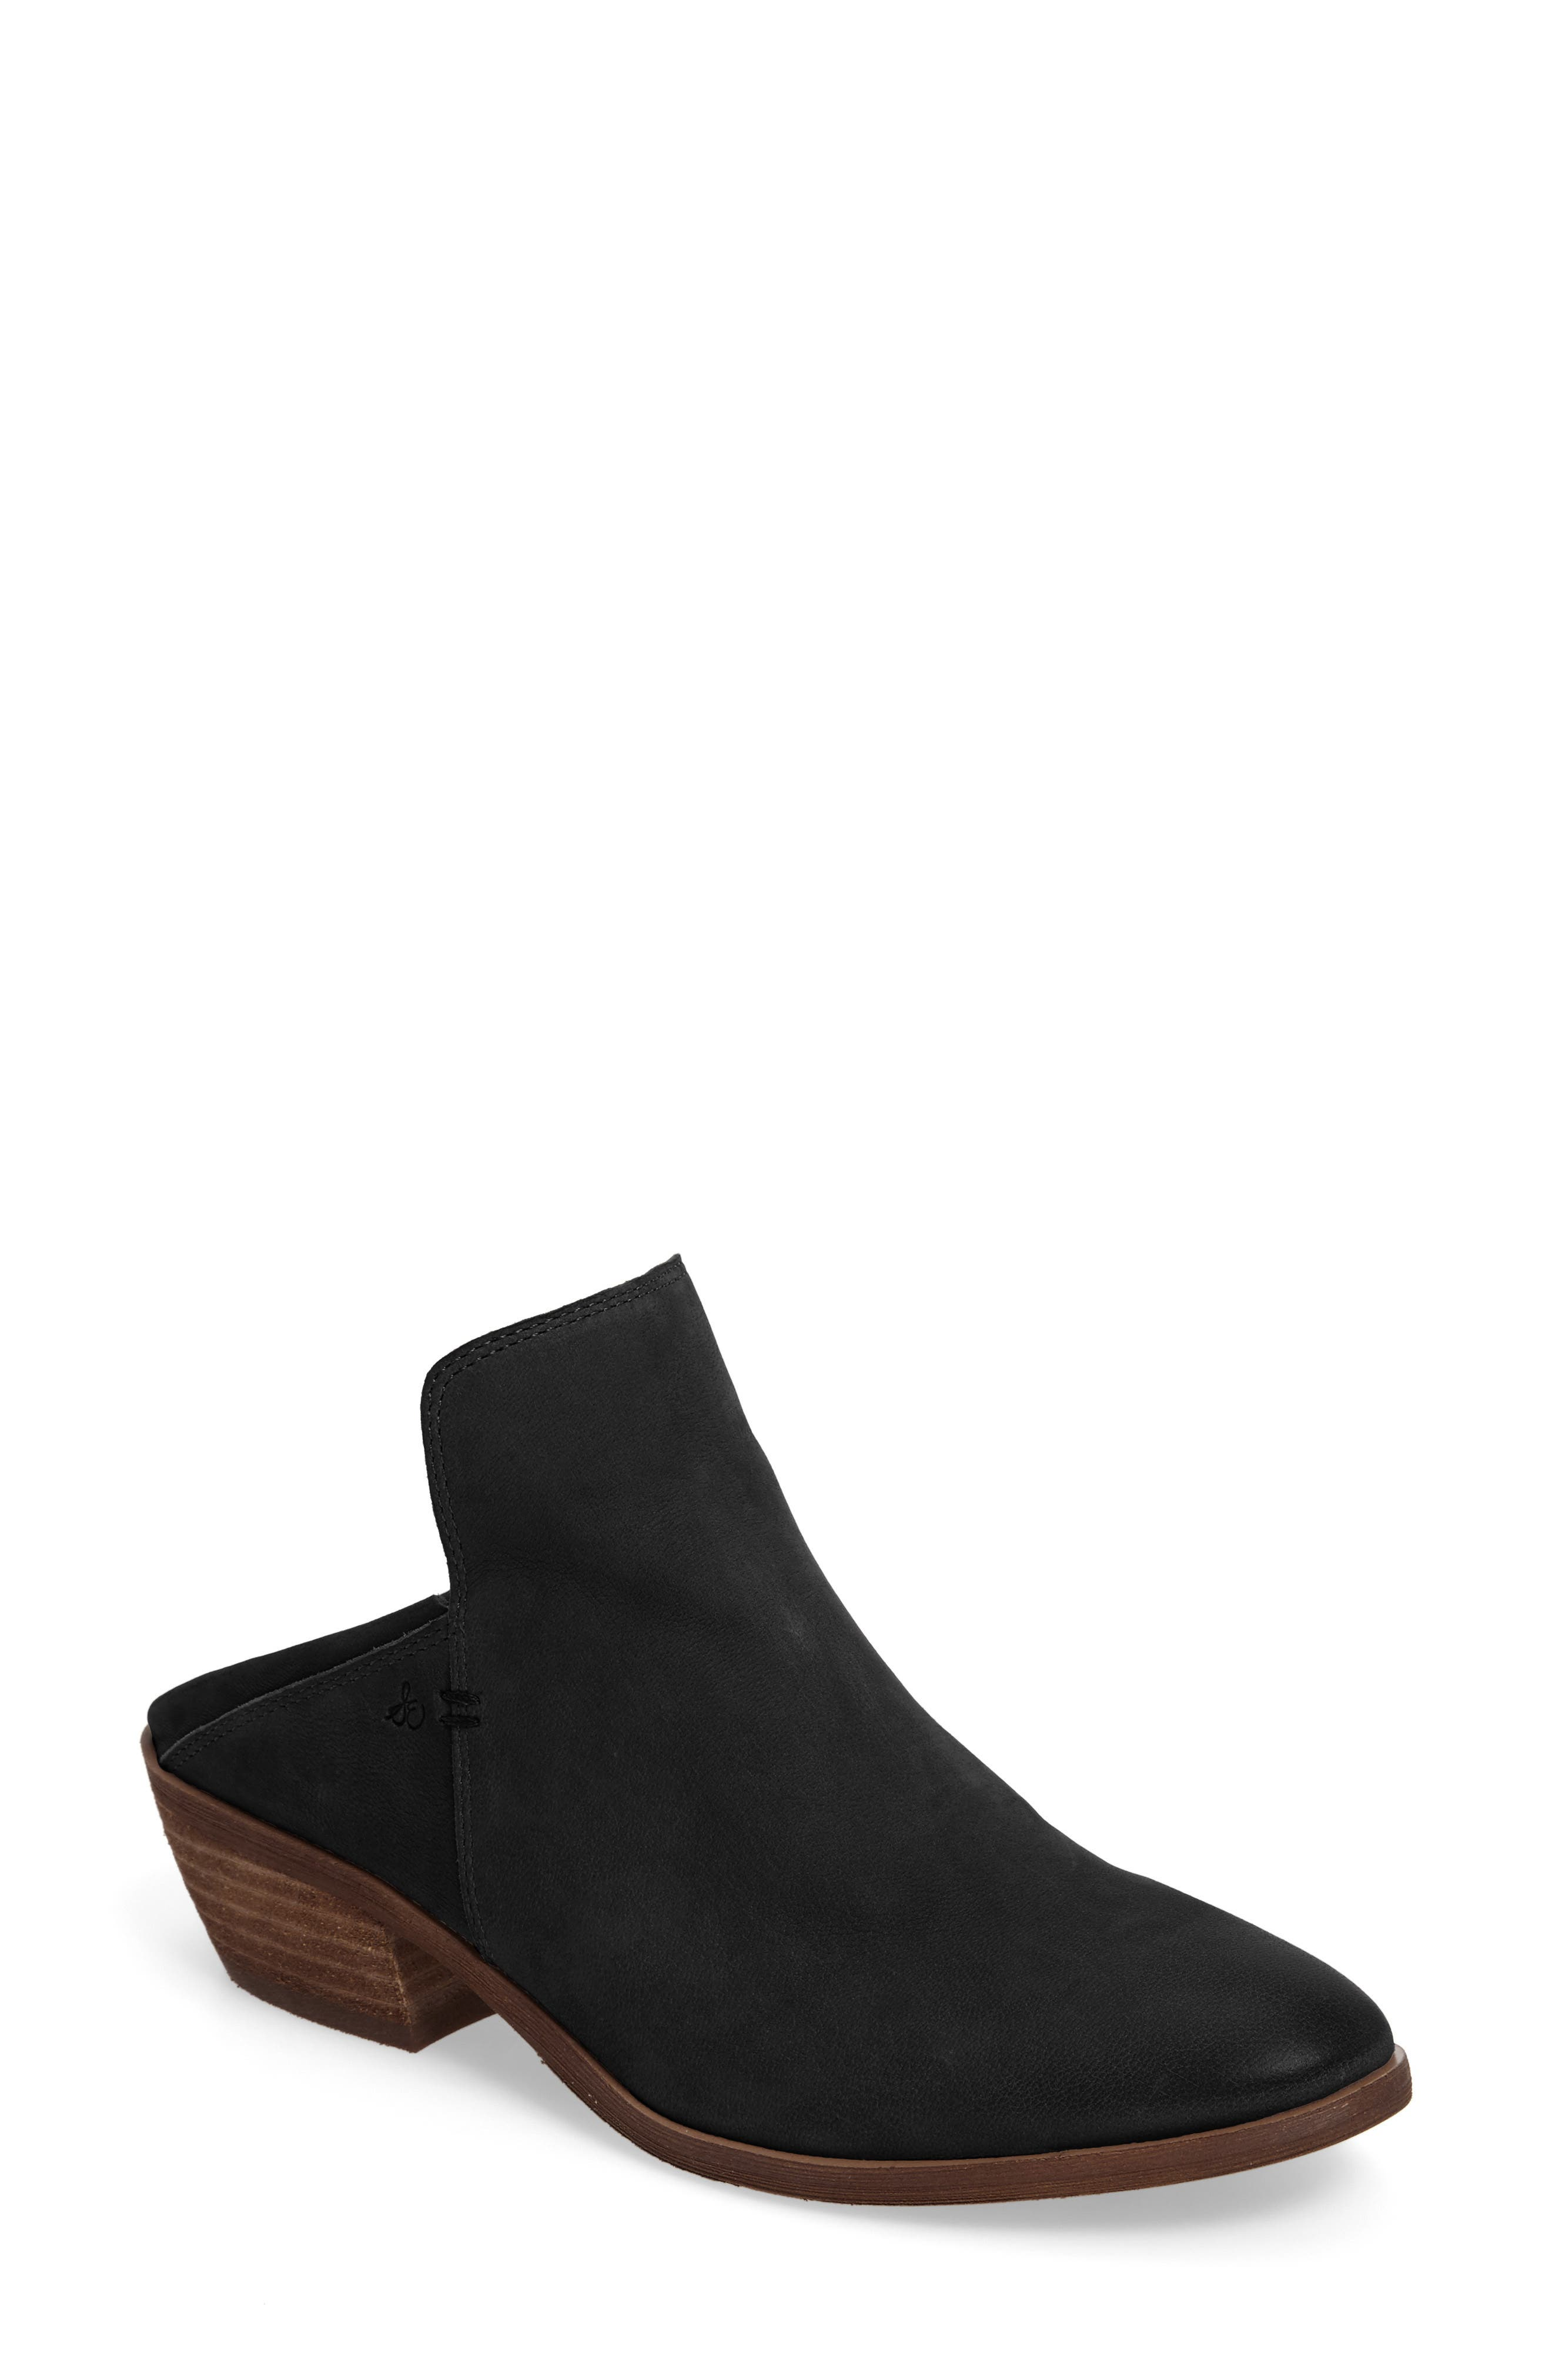 Prentice Convertible Ankle Boot,                             Main thumbnail 1, color,